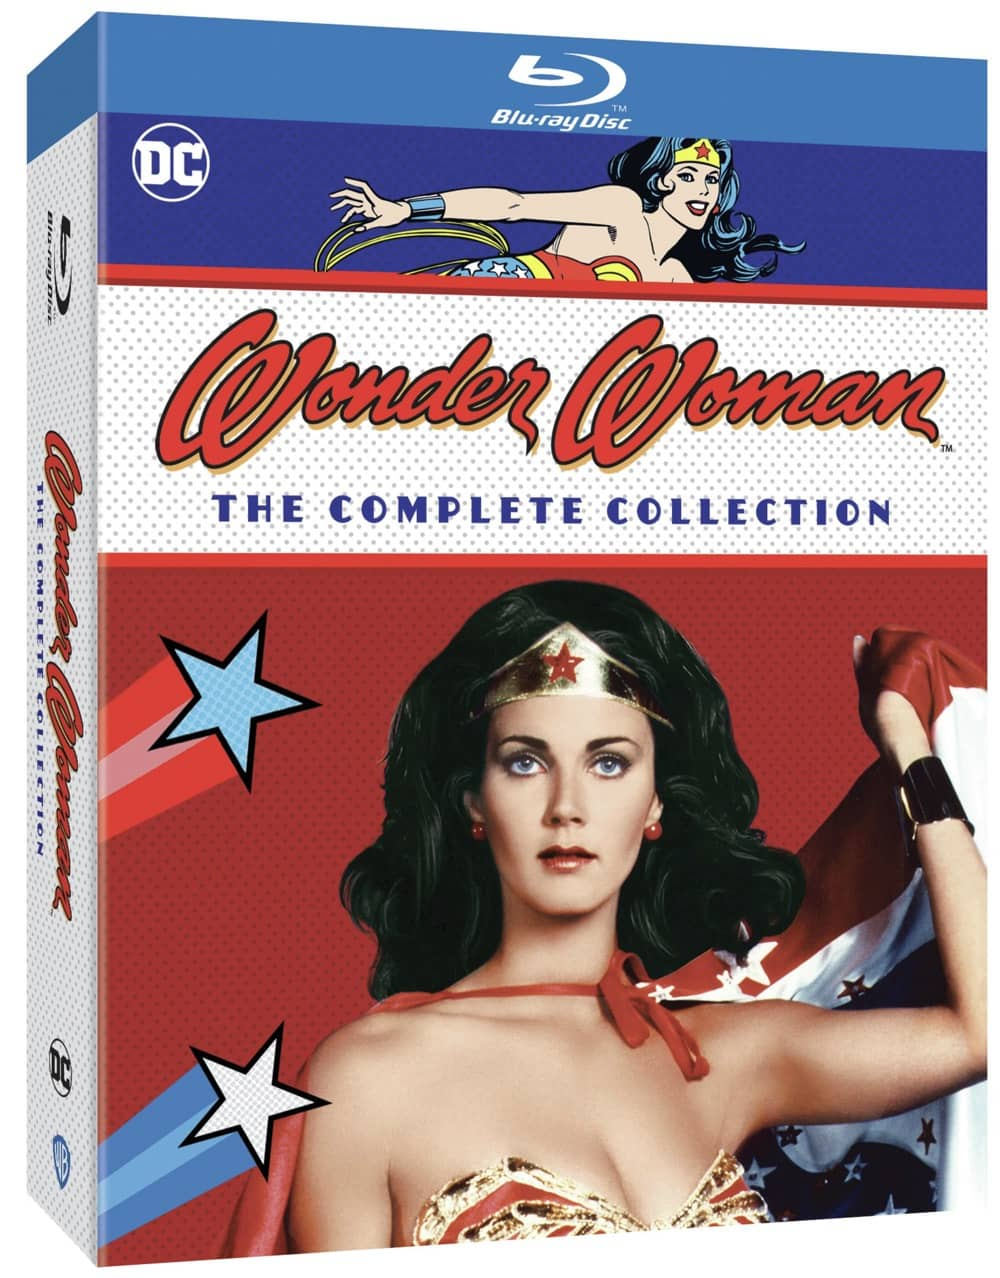 WONDER WOMAN TCS 1000759738 BD SC 3D FINAL WW SKEW 2d7c51e6